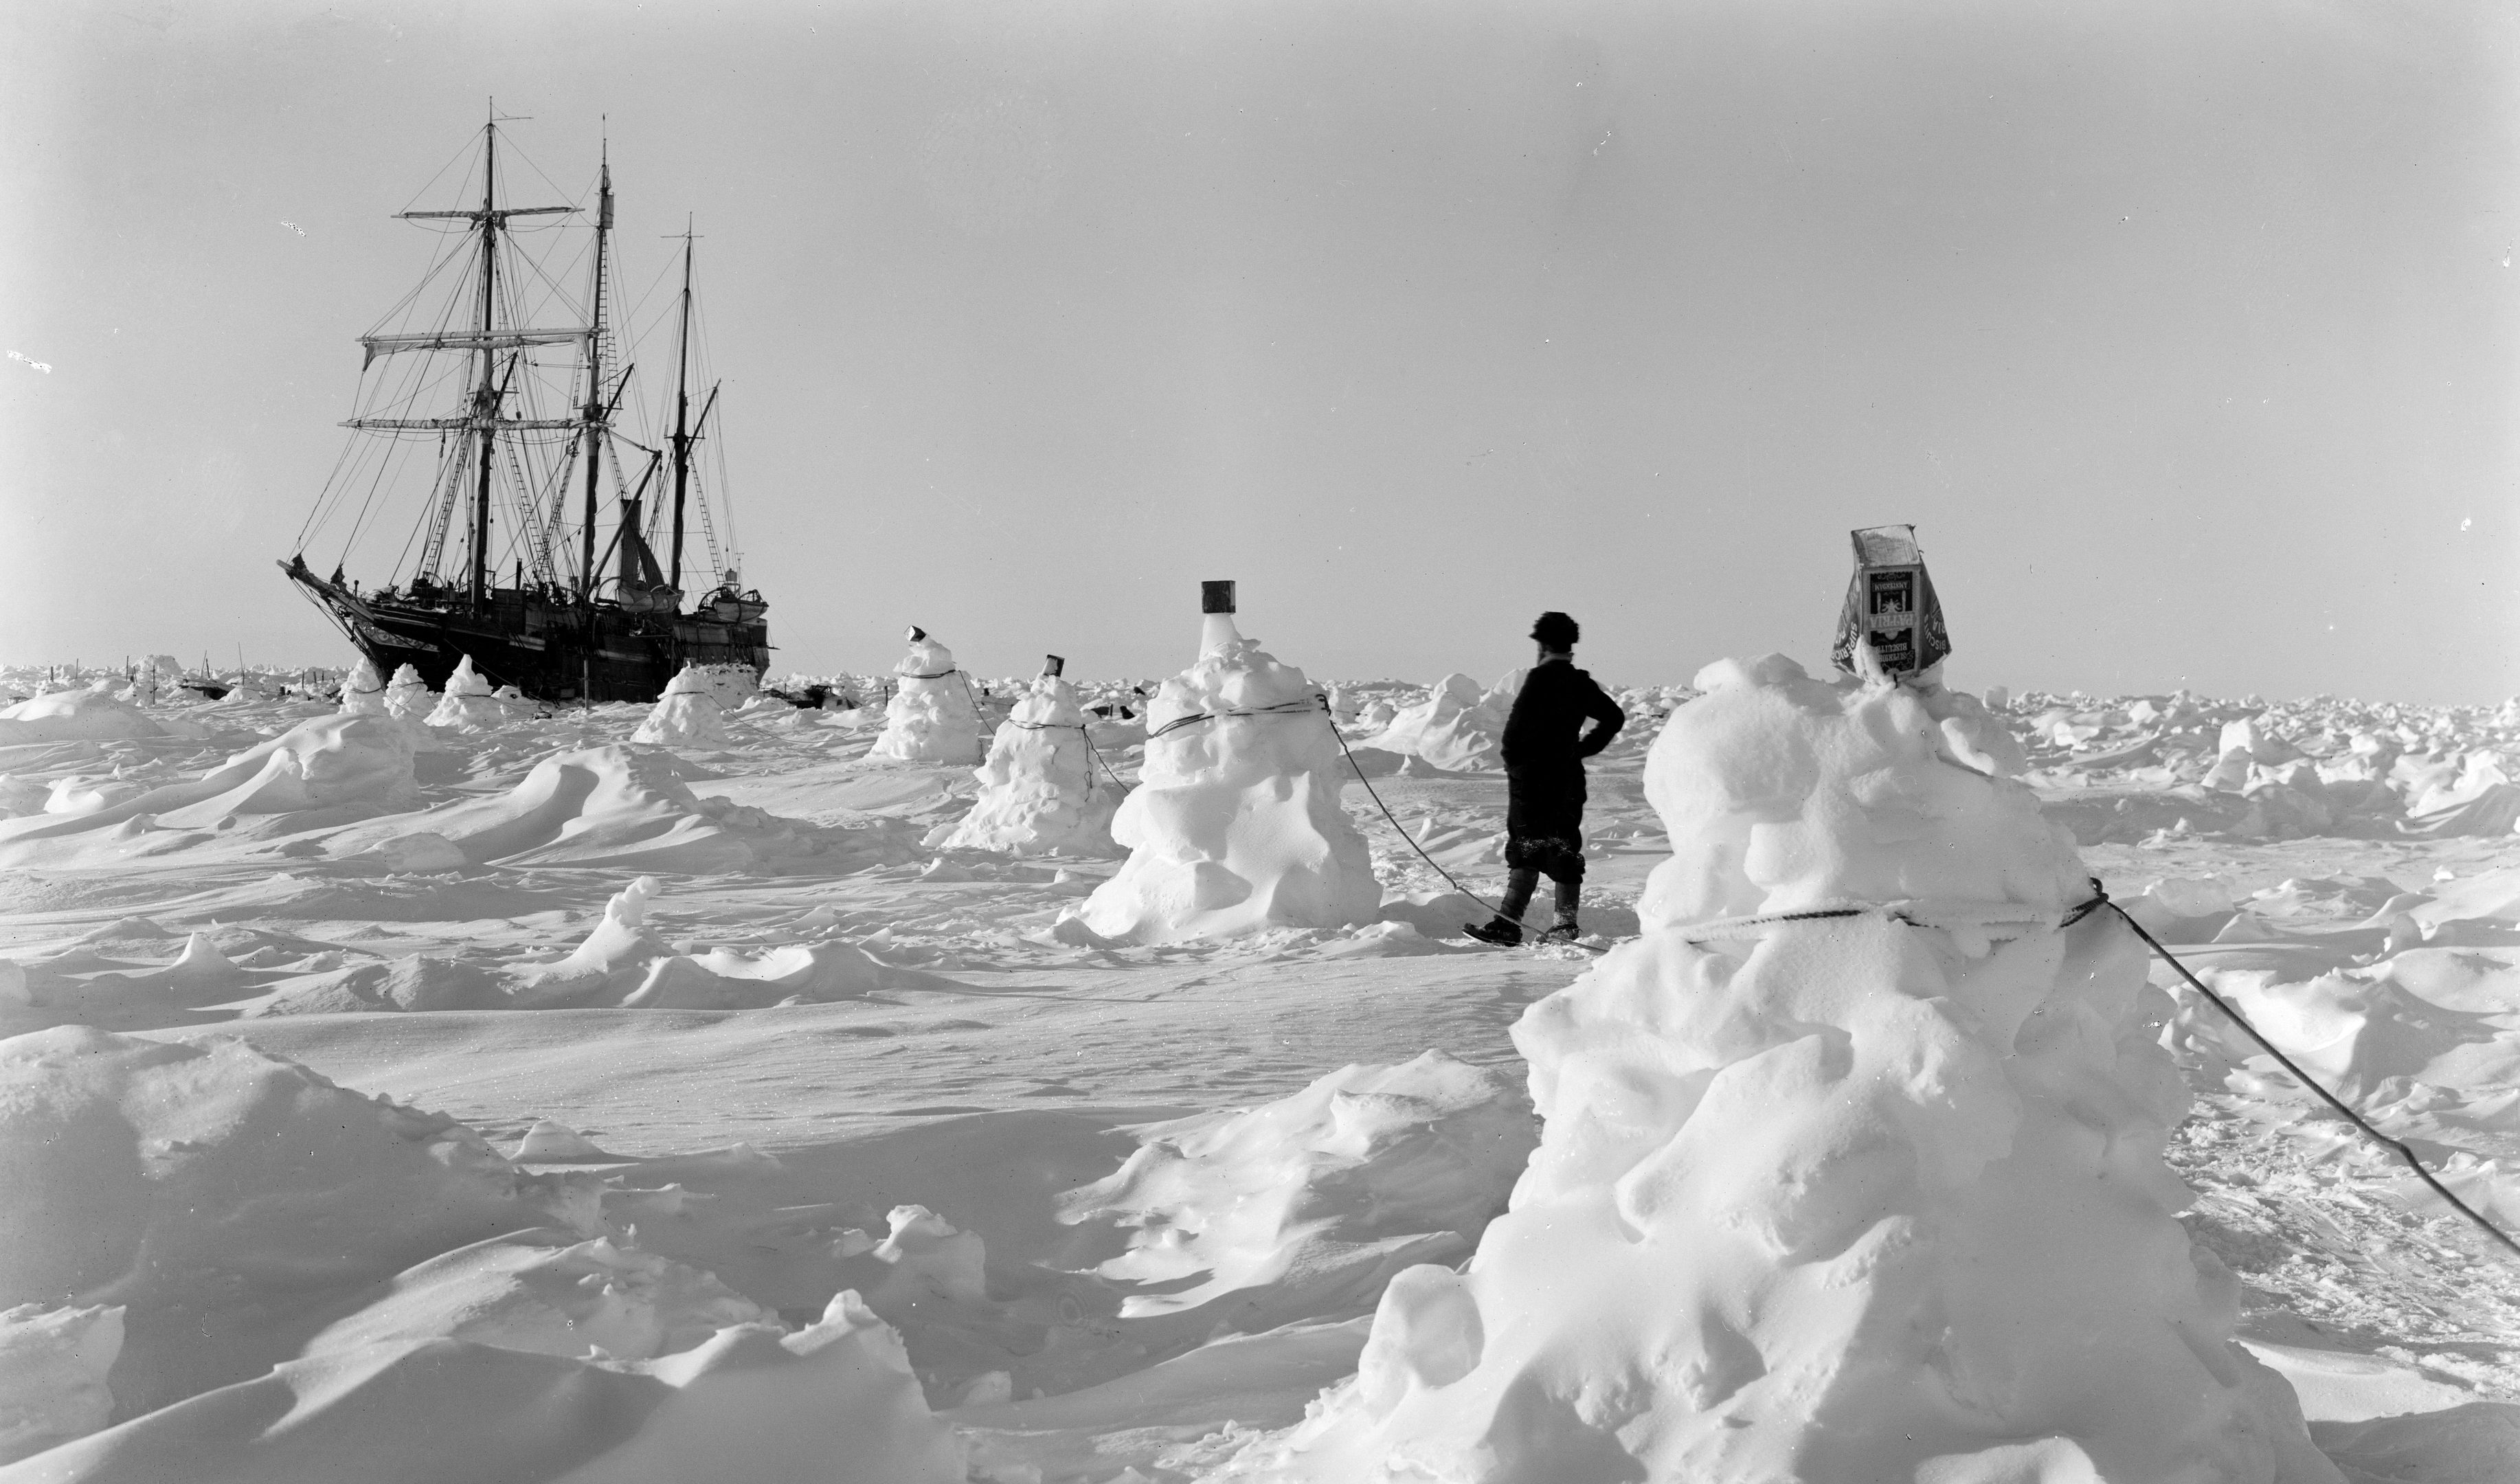 Frank Hurley's pictures of the Ernest Shackleton expedition, 1914